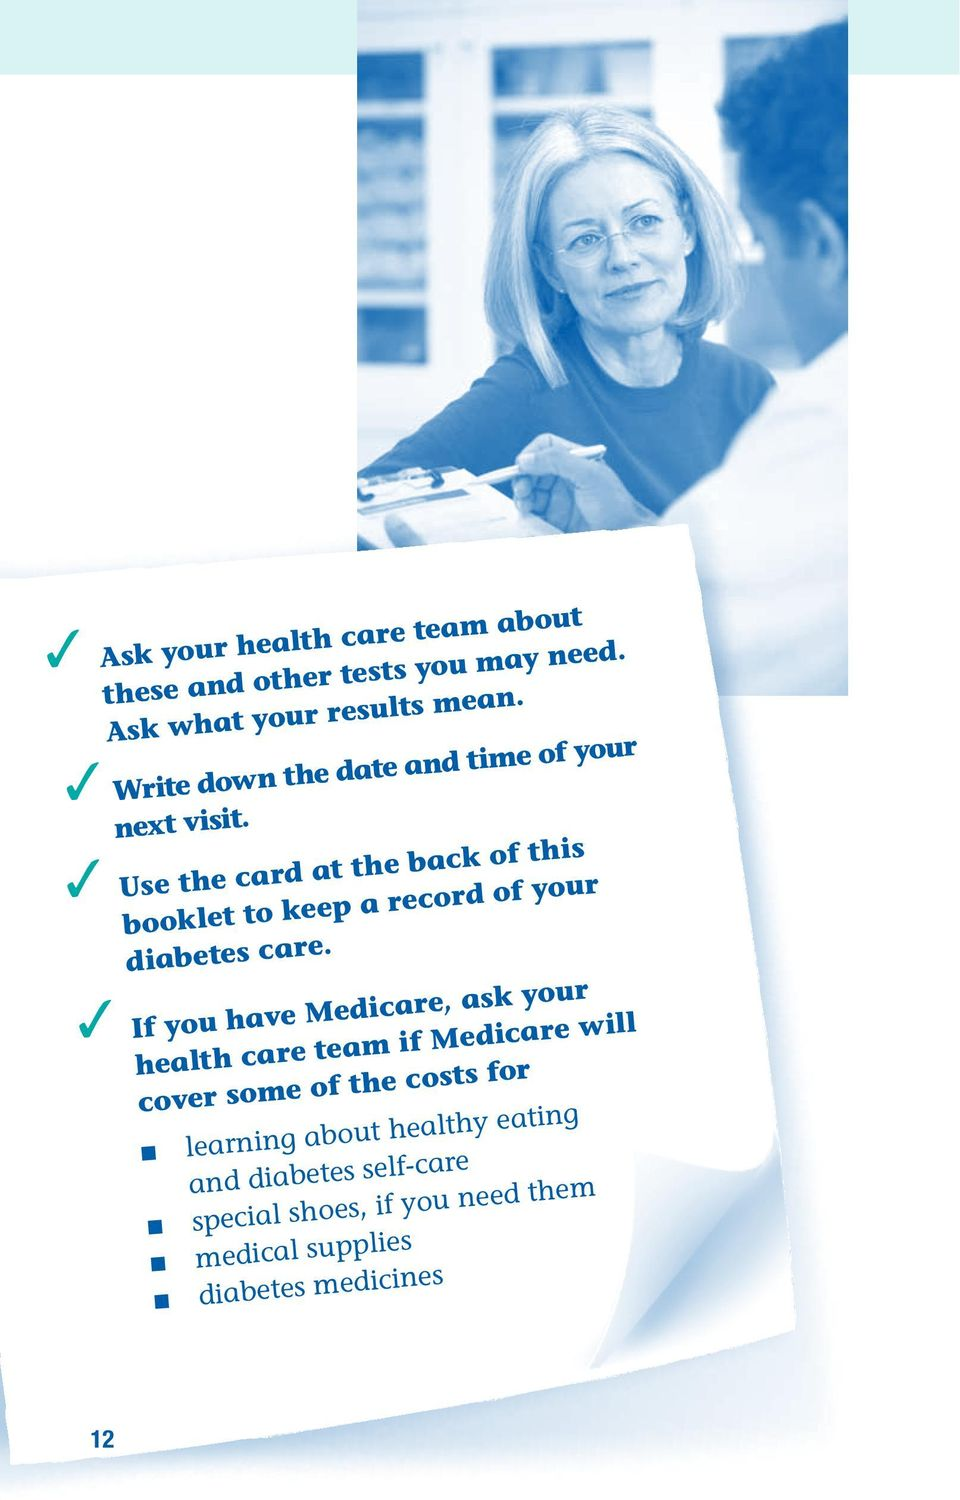 3 k o Use the card at the bac f this booklet to keep a record of your diabetes care.